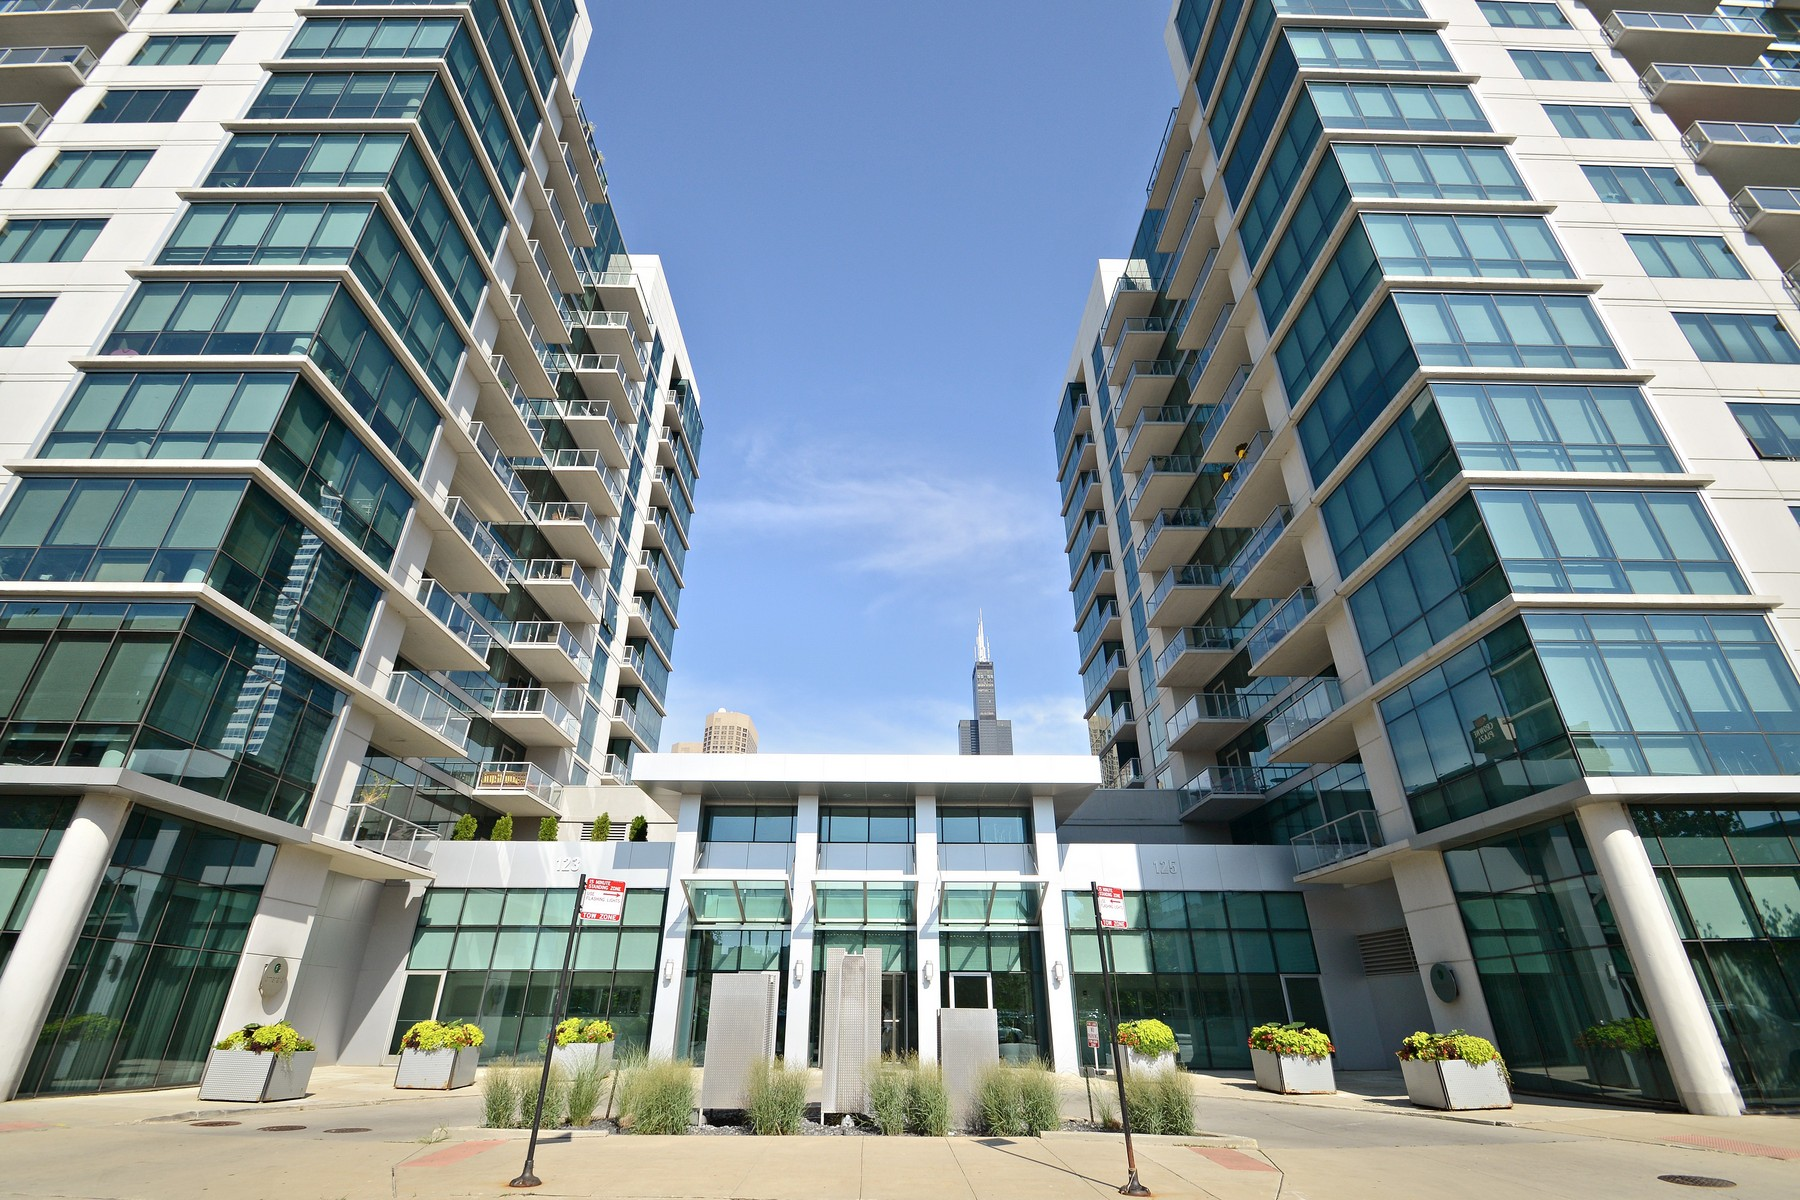 125 S Green St # 506a, Chicago, IL 60607